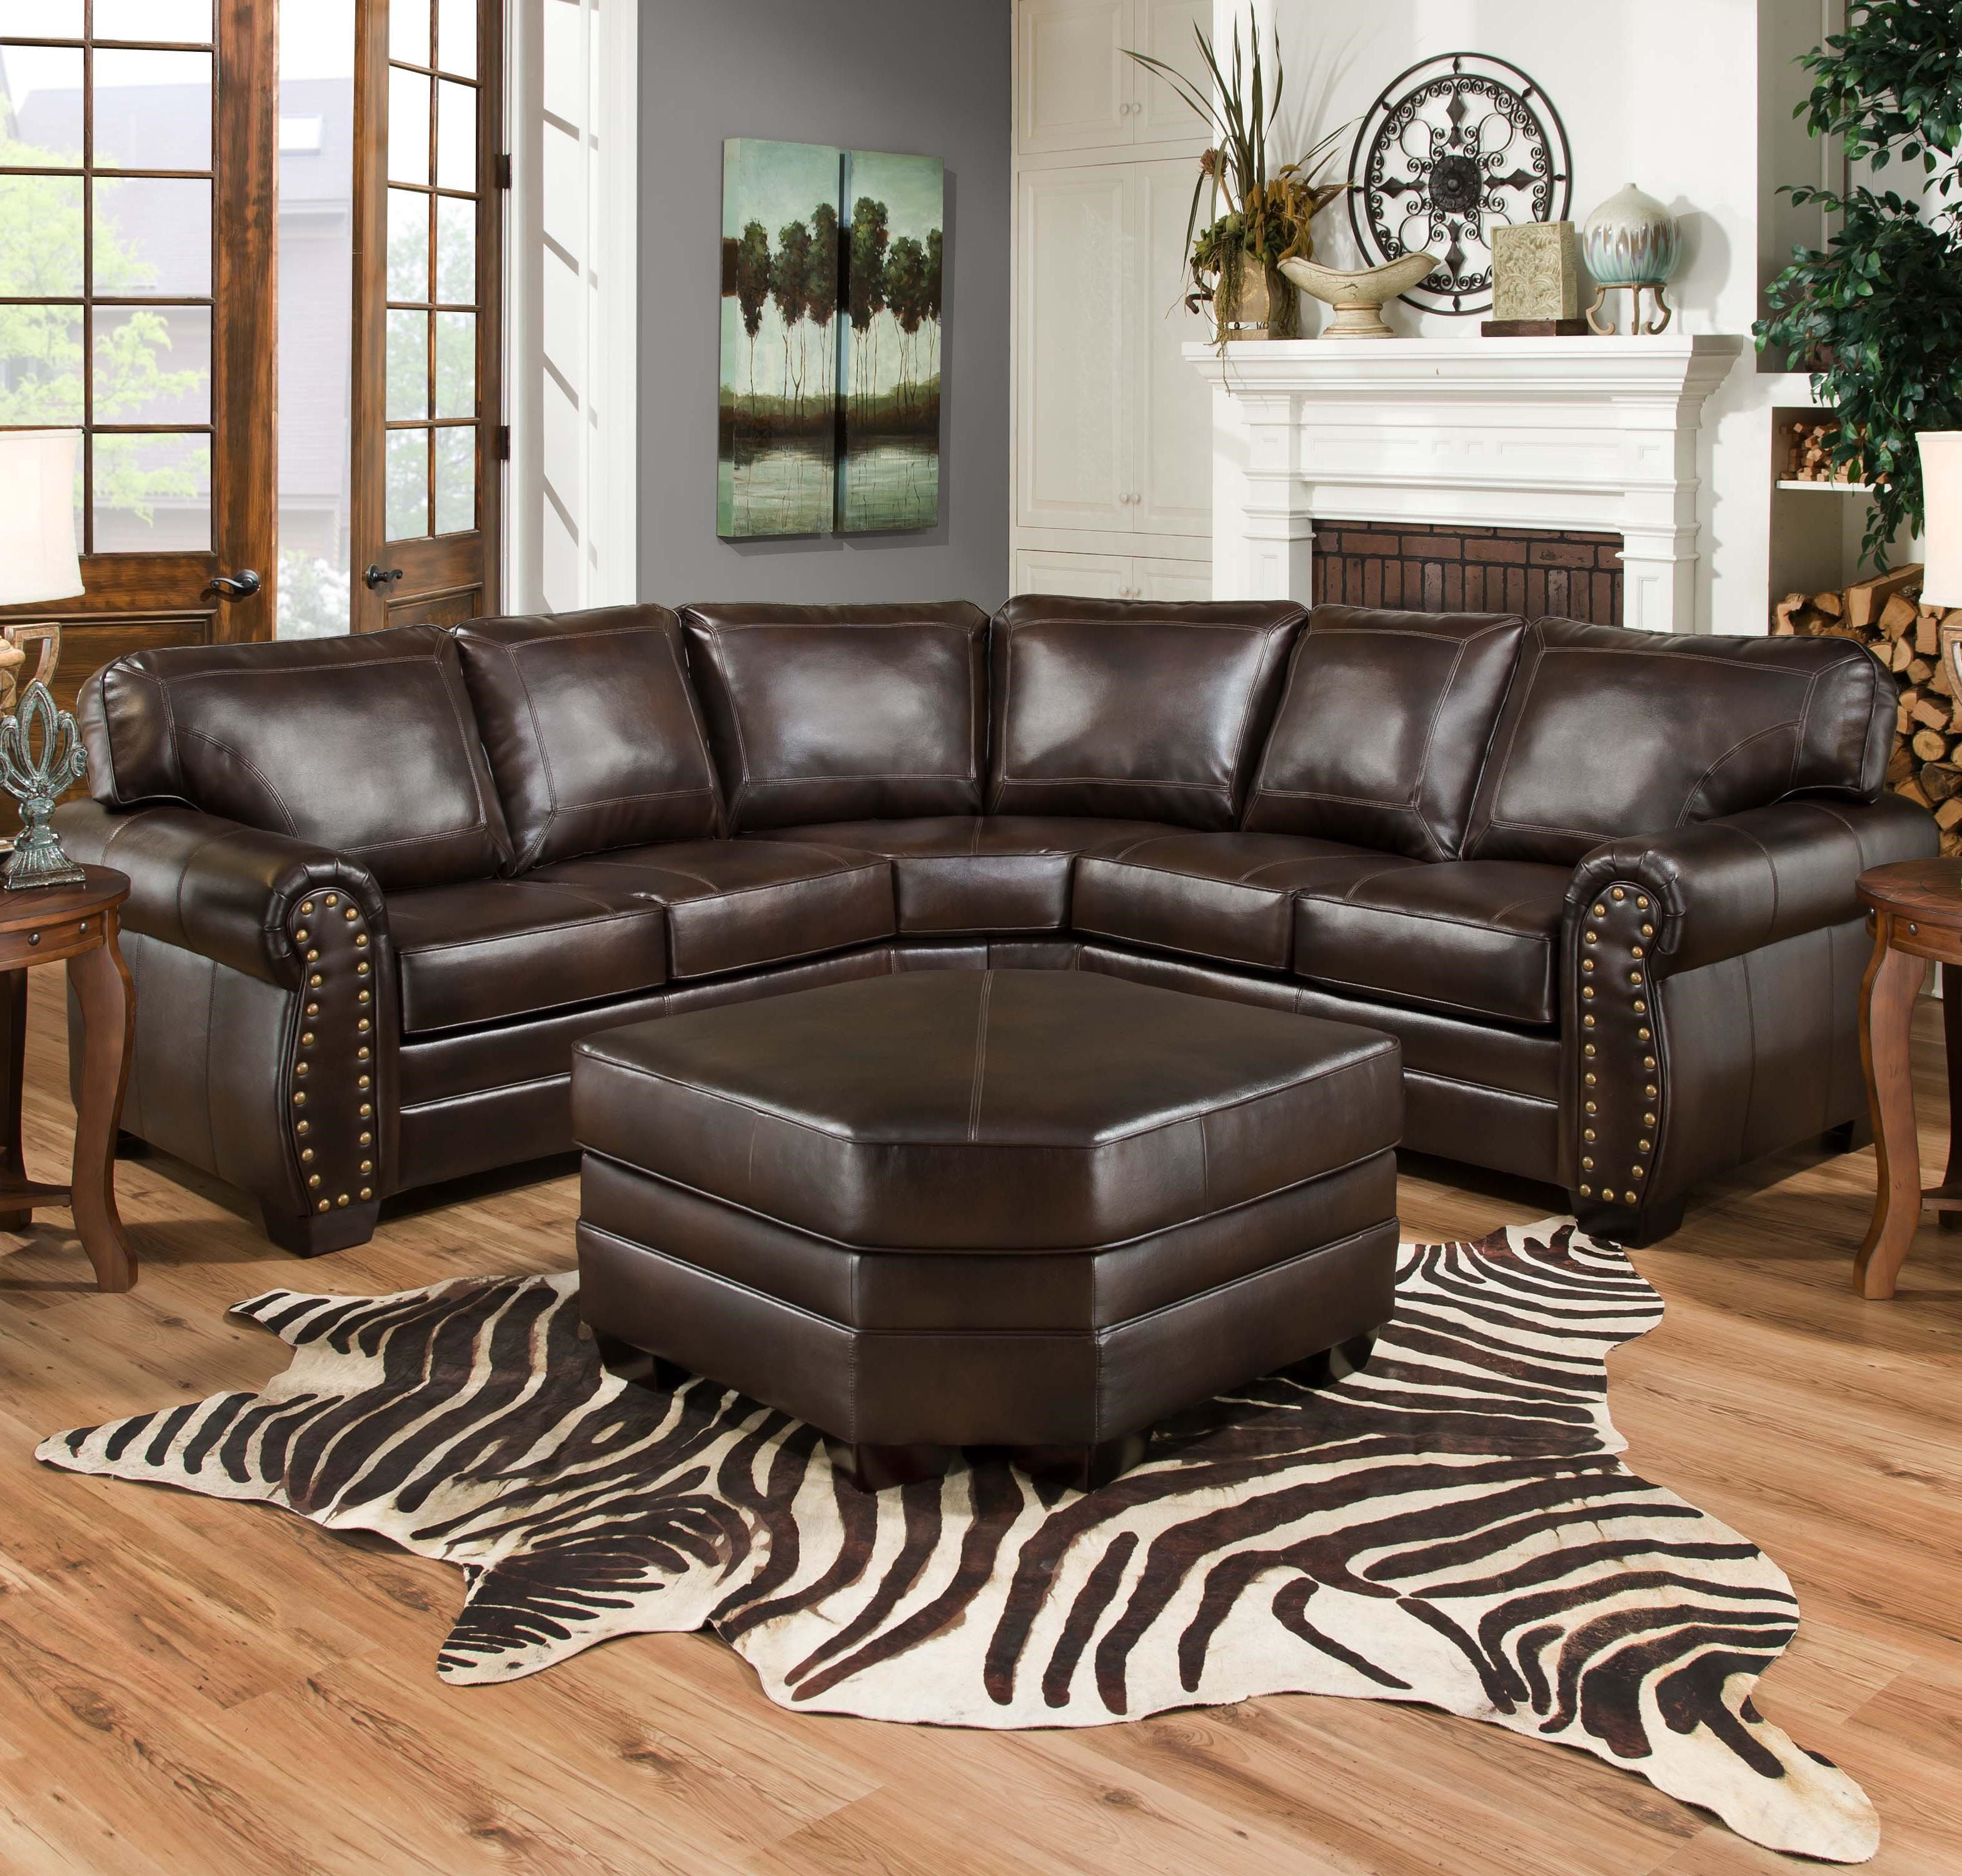 simmons blackjack cocoa reclining sofa and loveseat custom leather sofas houston tx 50250 br united furniture ...